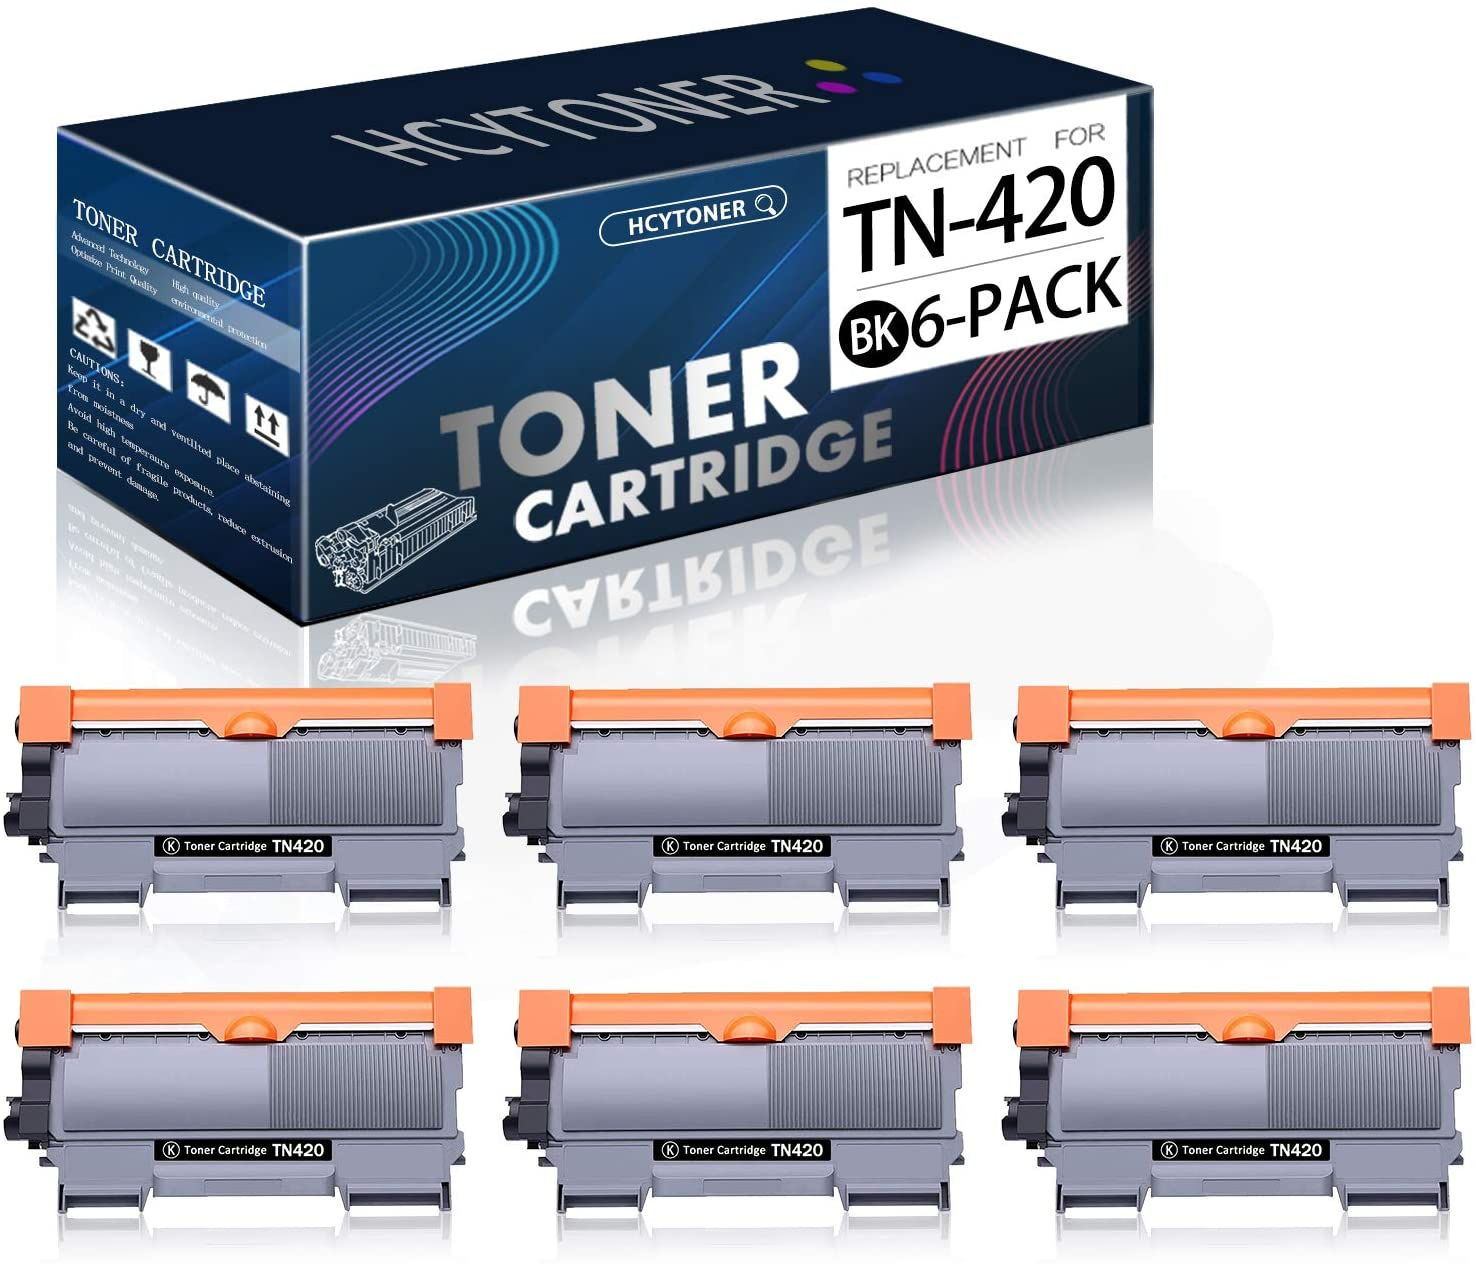 (6-Pack,Black) TN420 TN-420 Toner Cartridge Replacement for Brother Cartridge TN420 Toner Compatible MFC-7240 7360N 7365DN 7460DN DCP-7060D 7065D Intellifax 2840 2940 HL-2130 2132 2220 2230 Printer